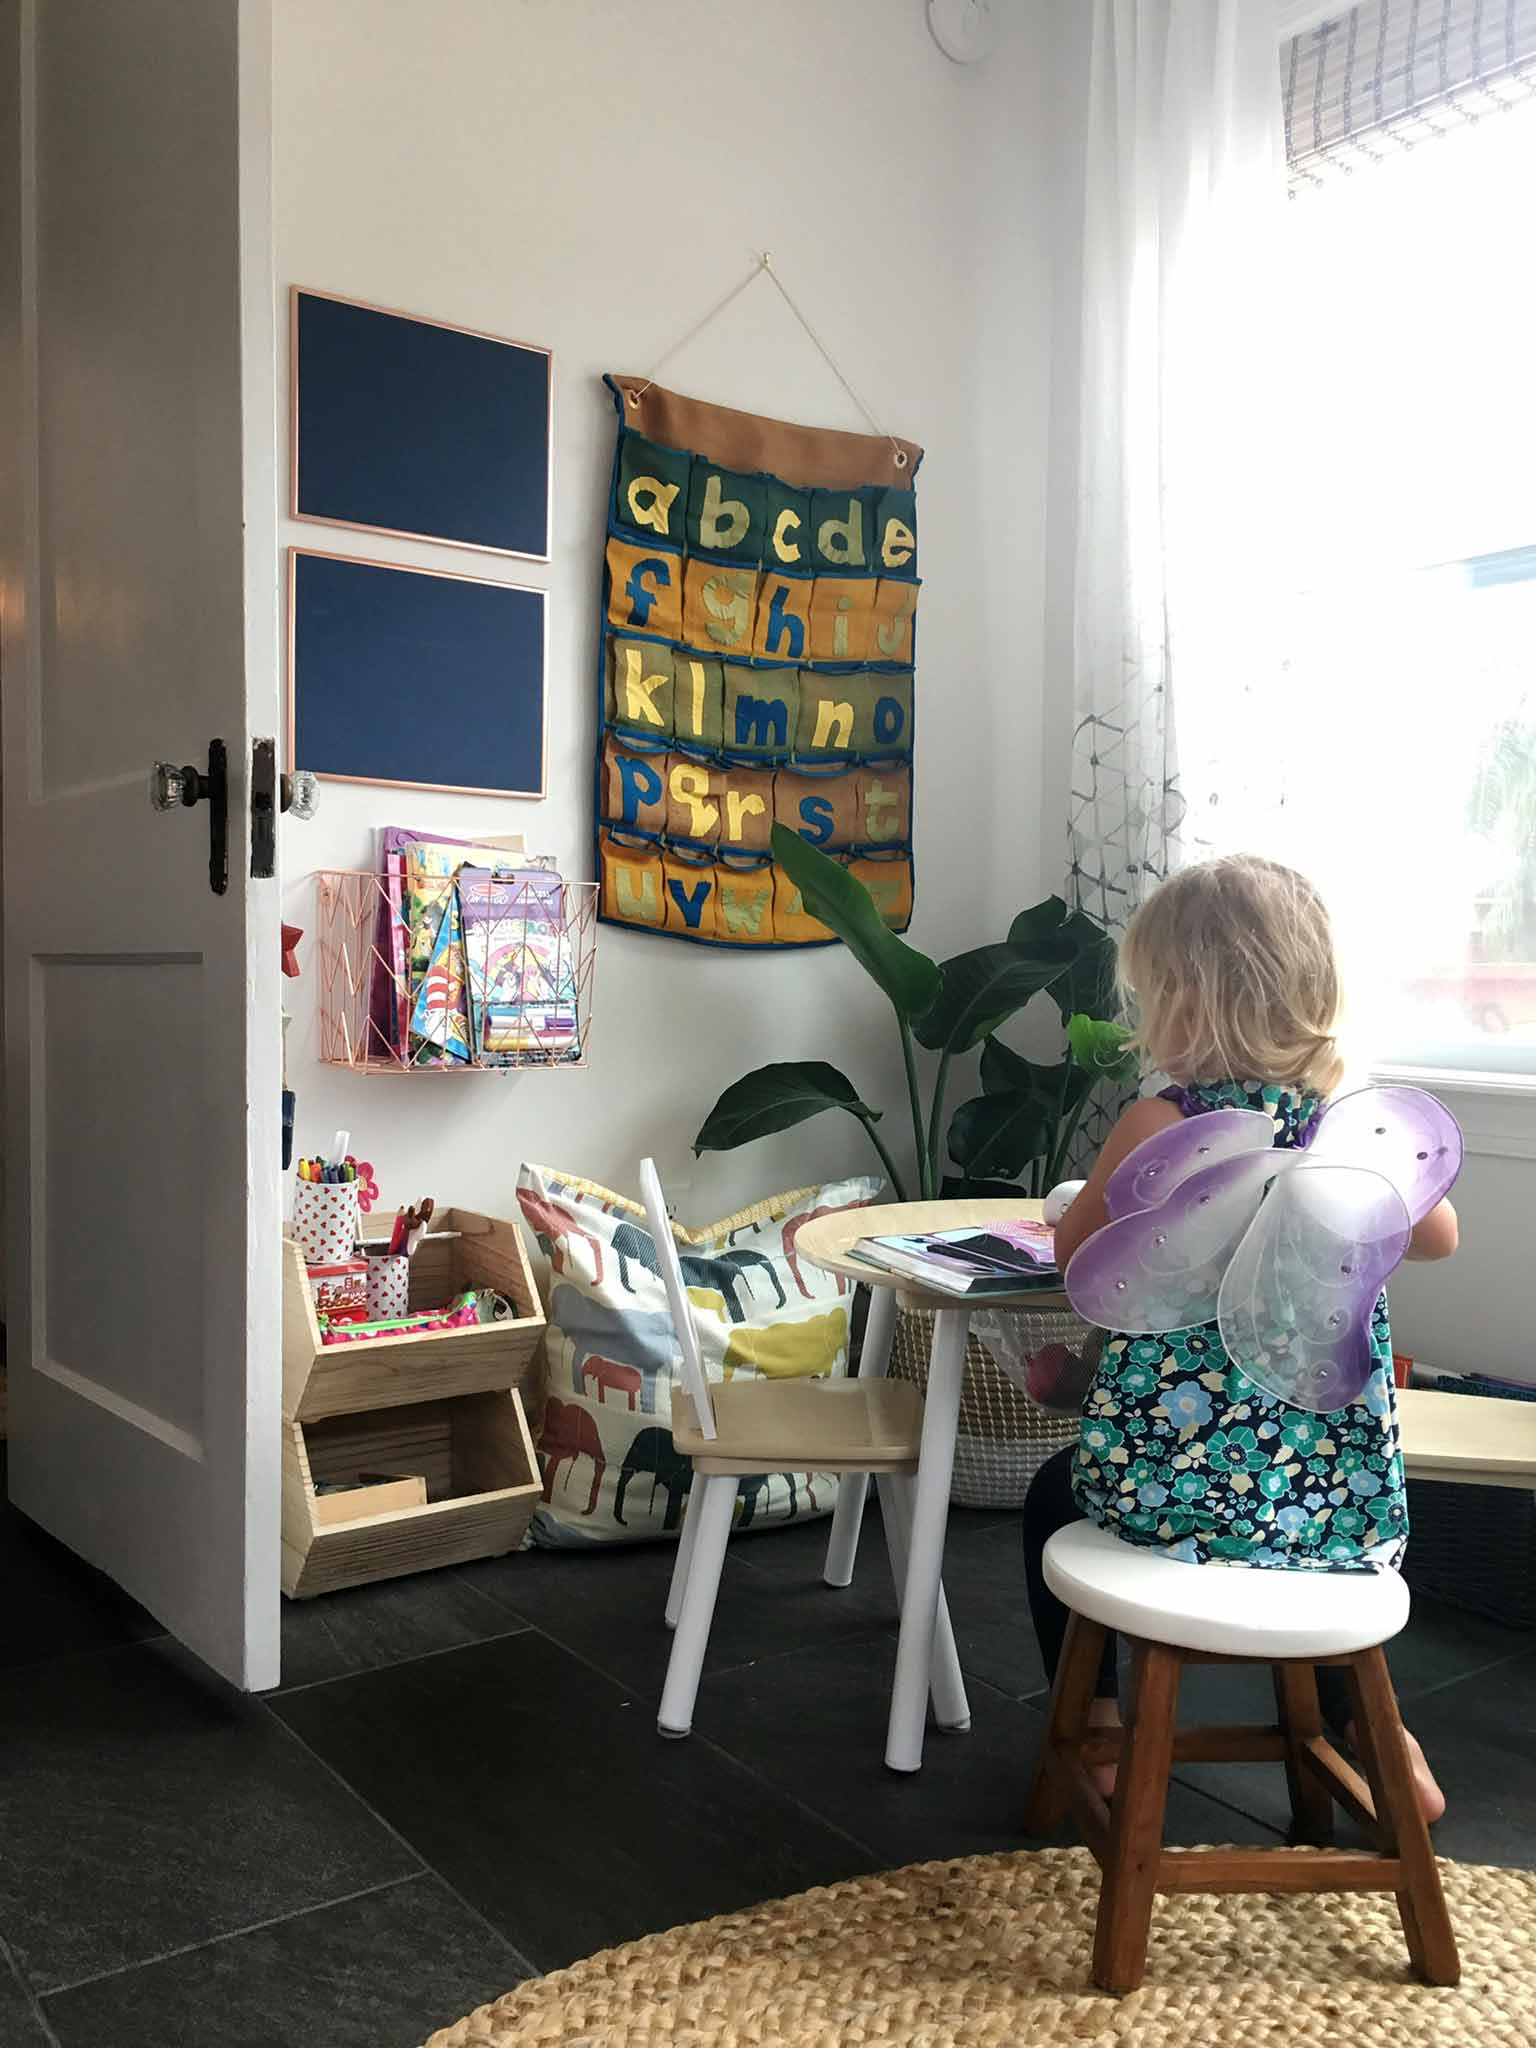 Kids art and craft table - playroom house tour - That Homebird Life Blog